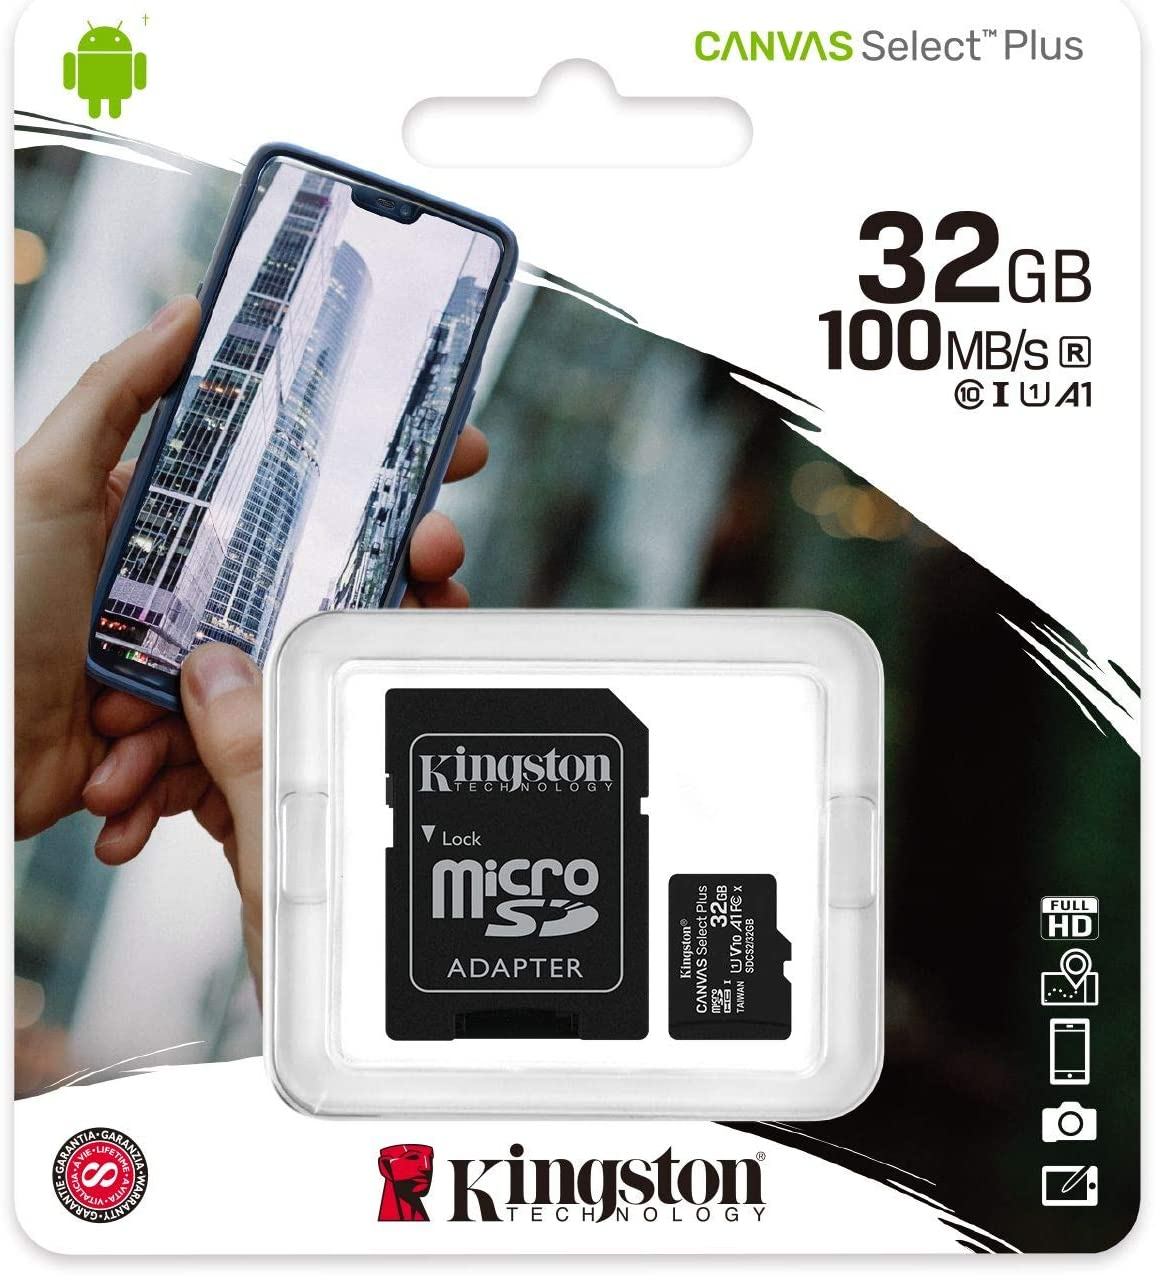 Kingston 32GB Alcatel OneTouch POP D3 MicroSDHC Canvas Select Plus Card Verified by SanFlash. 100MBs Works with Kingston